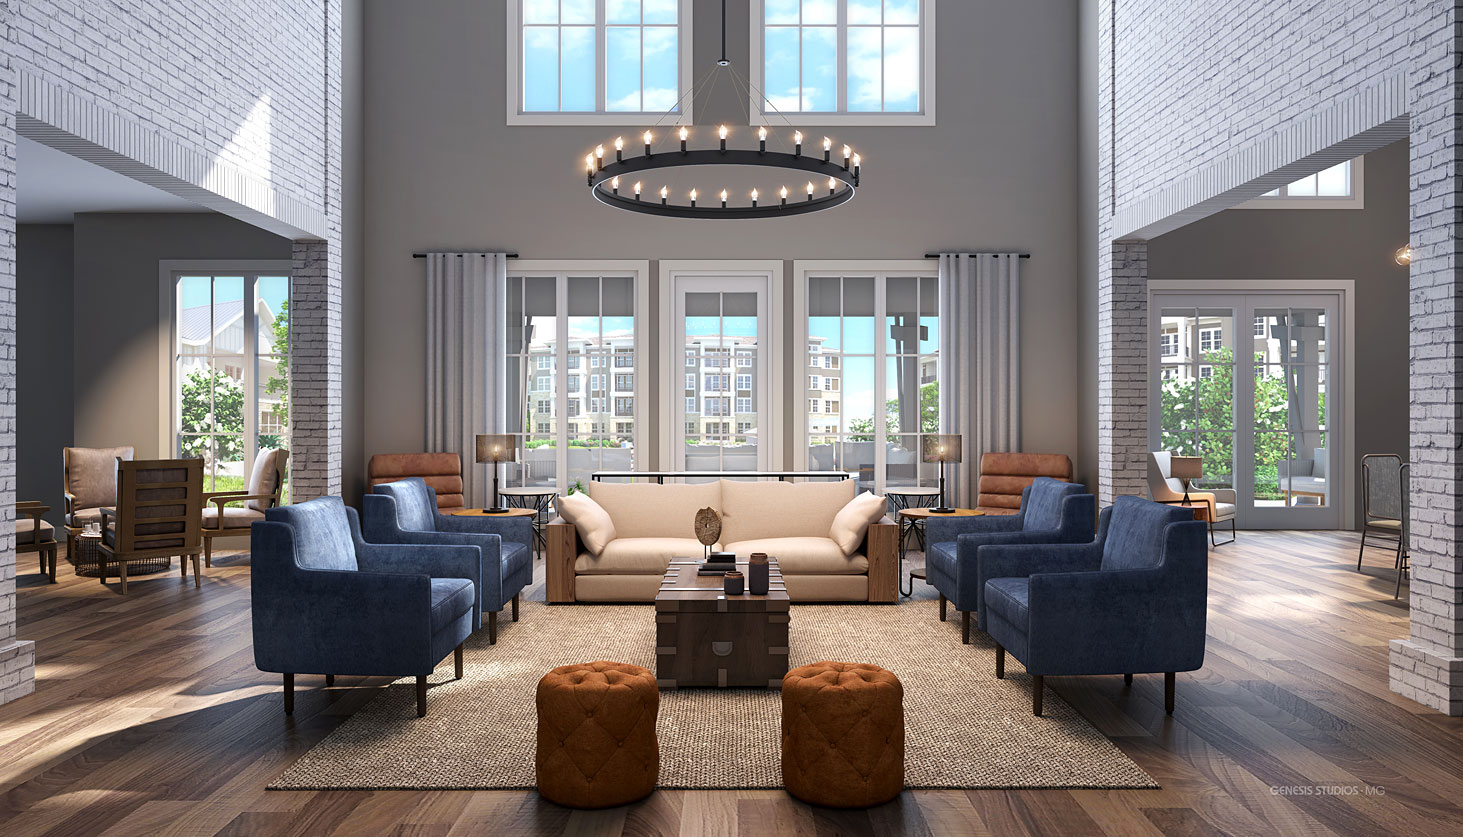 Digital Photorealistic Architectural Renderings of Round Rock Multi Family Housing Clubhouse for LIV Development